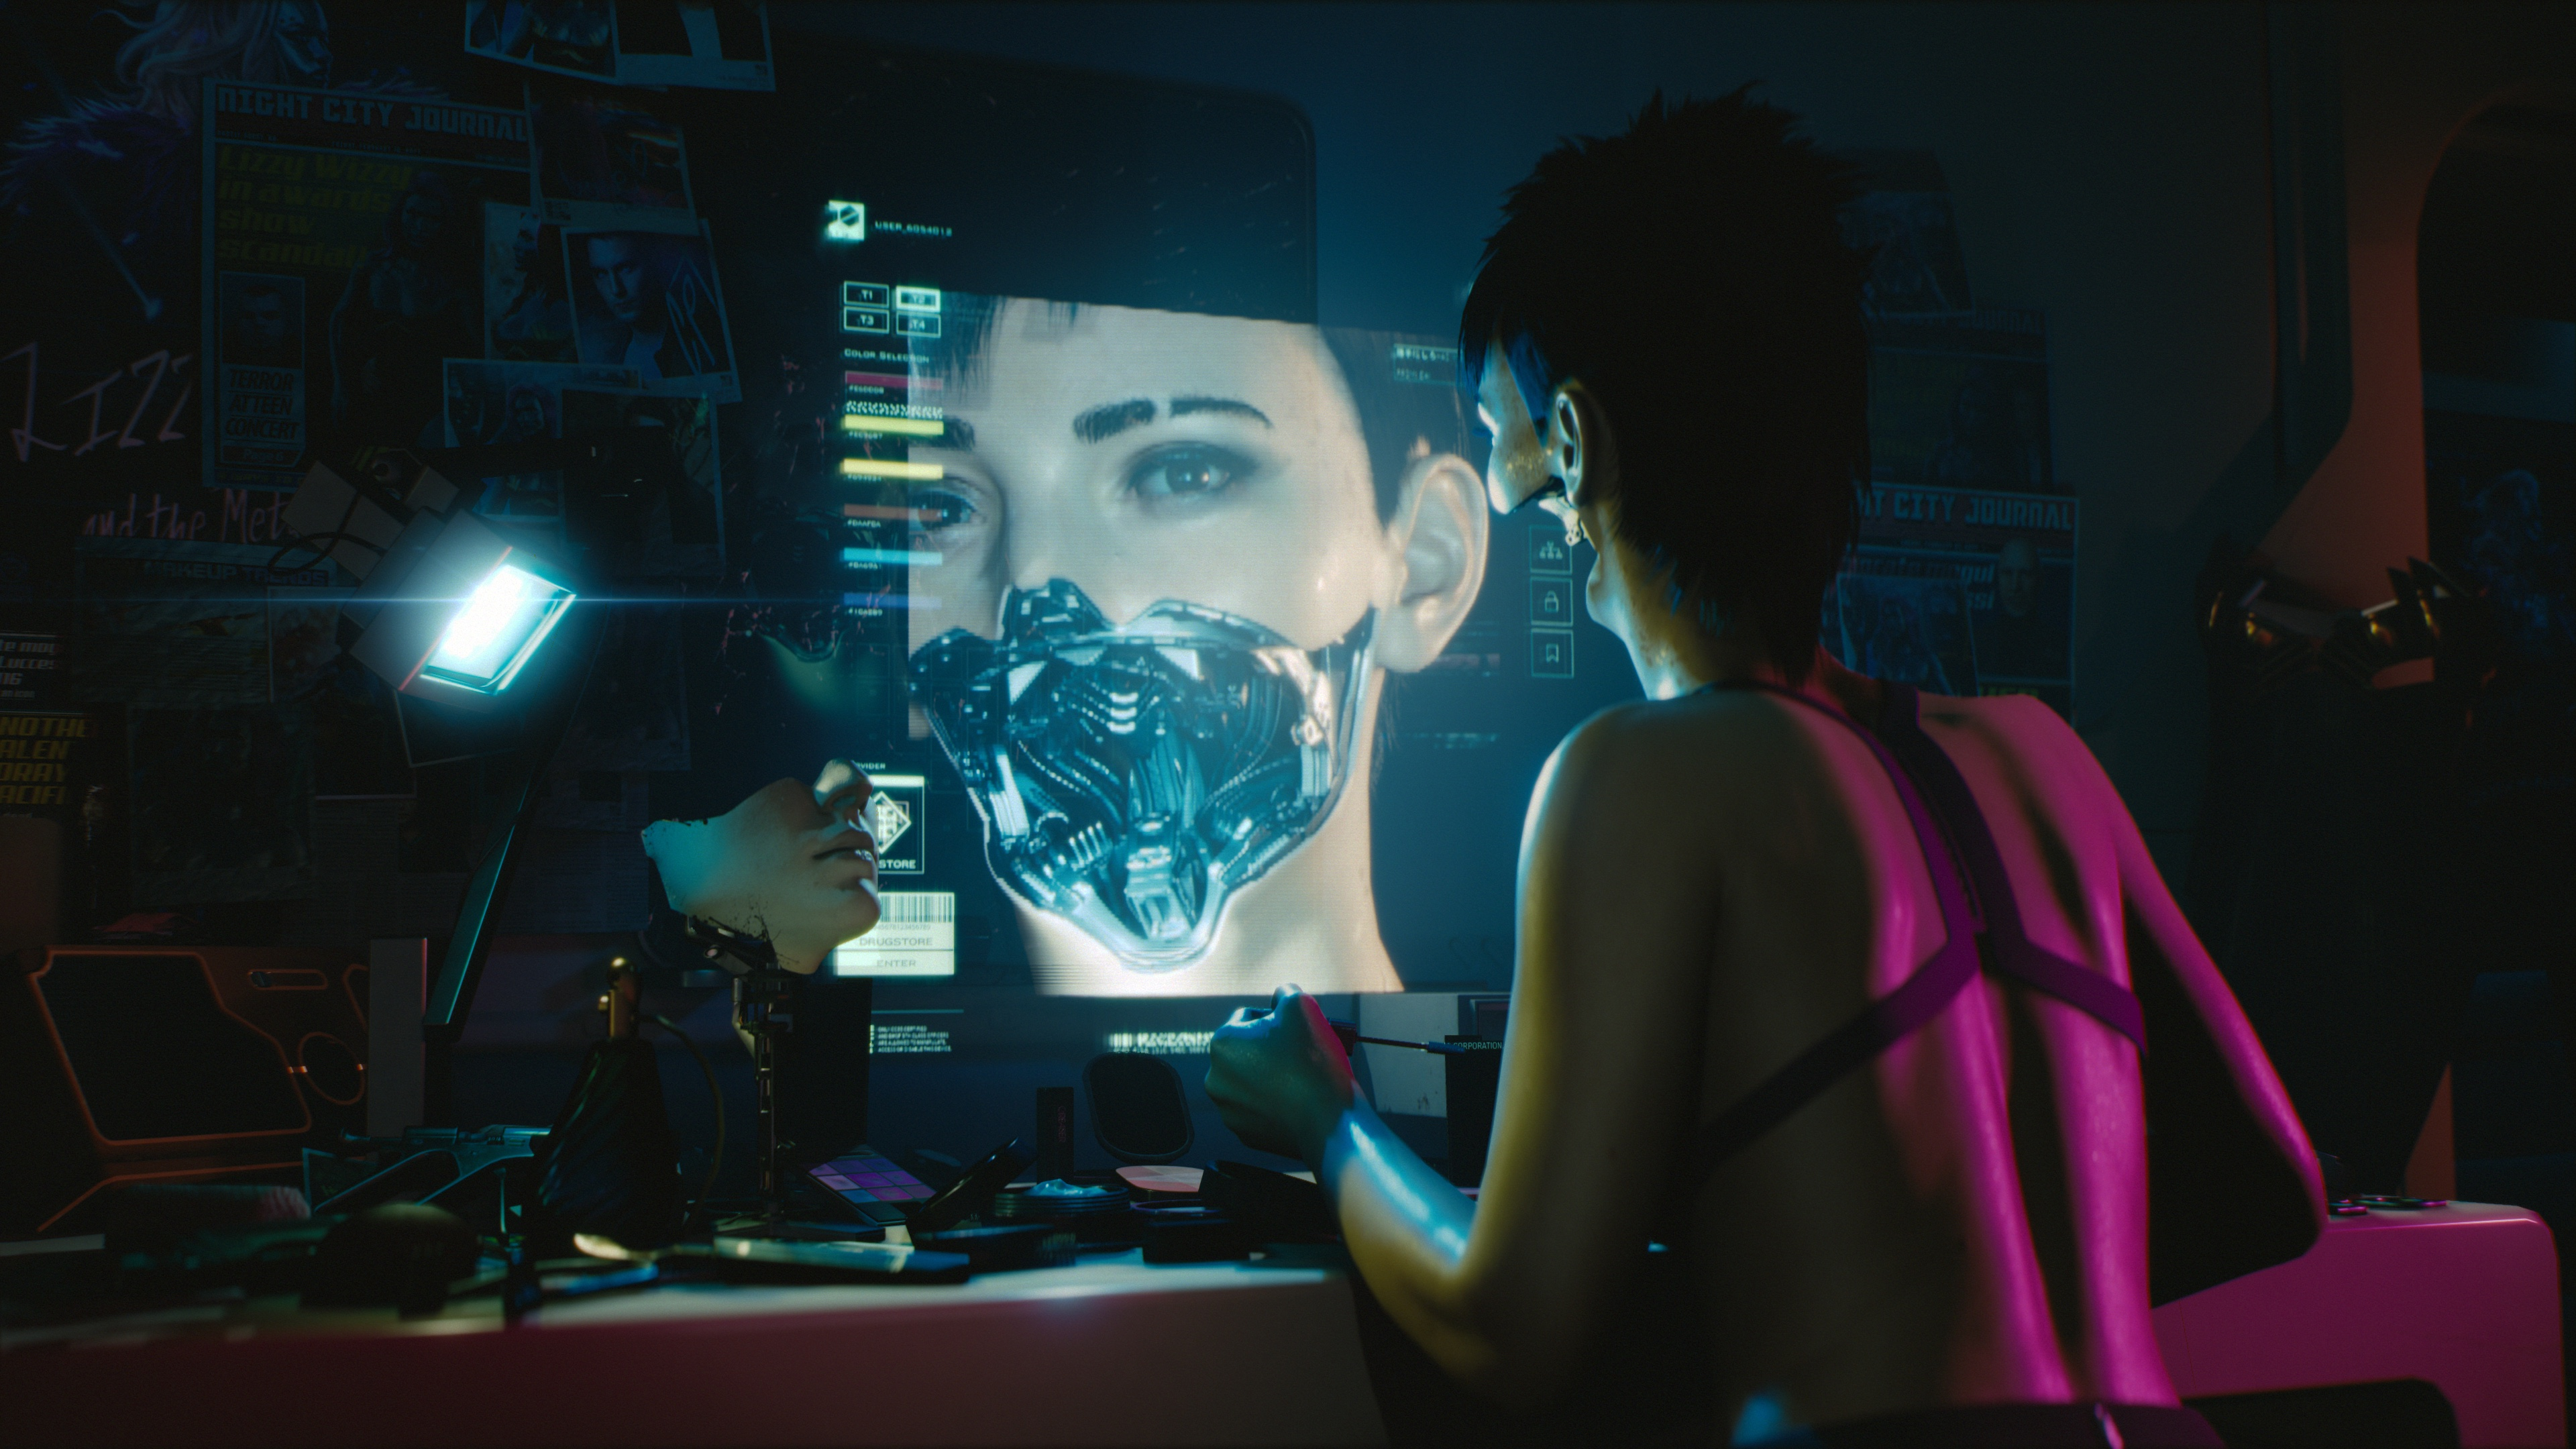 Cyberpunk 2077 will include full nudity for a very important reason